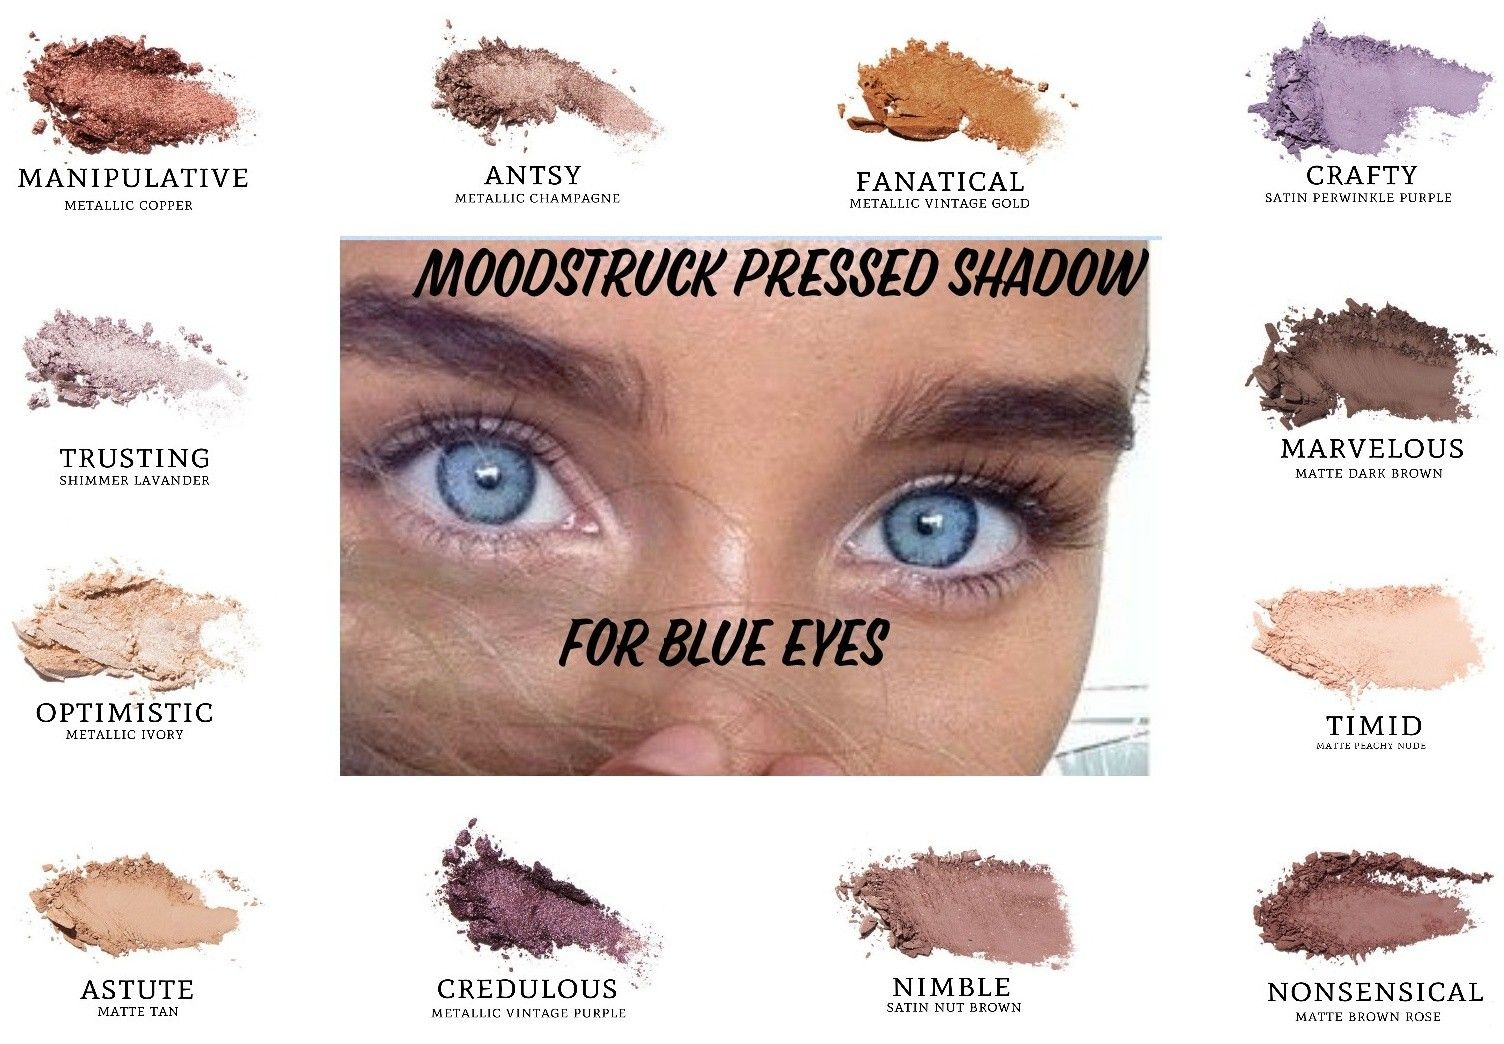 Do You Have Blue Eyes Here Are Some Moodstruck Pressed Shadows Colors That Will Compliment